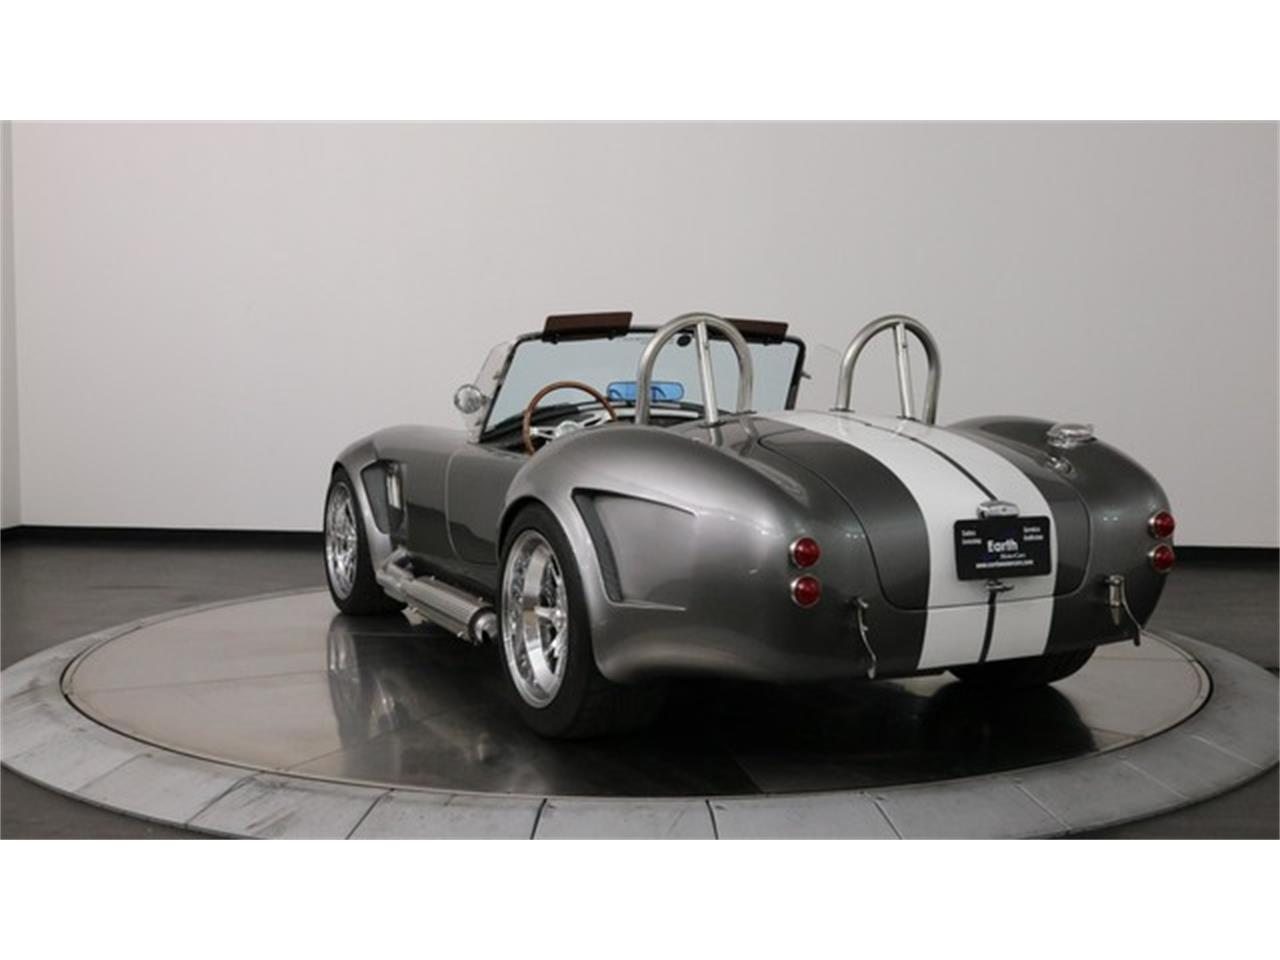 1965 Shelby BackDraft RT3 Roush Edition 427 Cobra for Sale